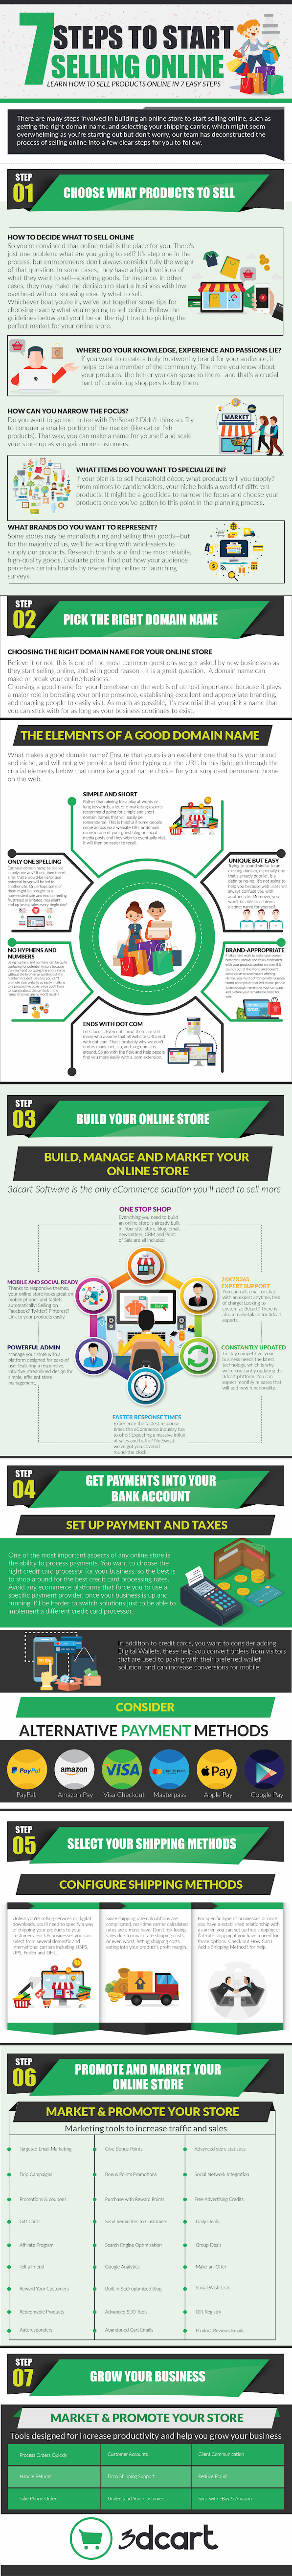 7 Steps to Start Selling Online #infographic #How to Sell #Selling Online #Business